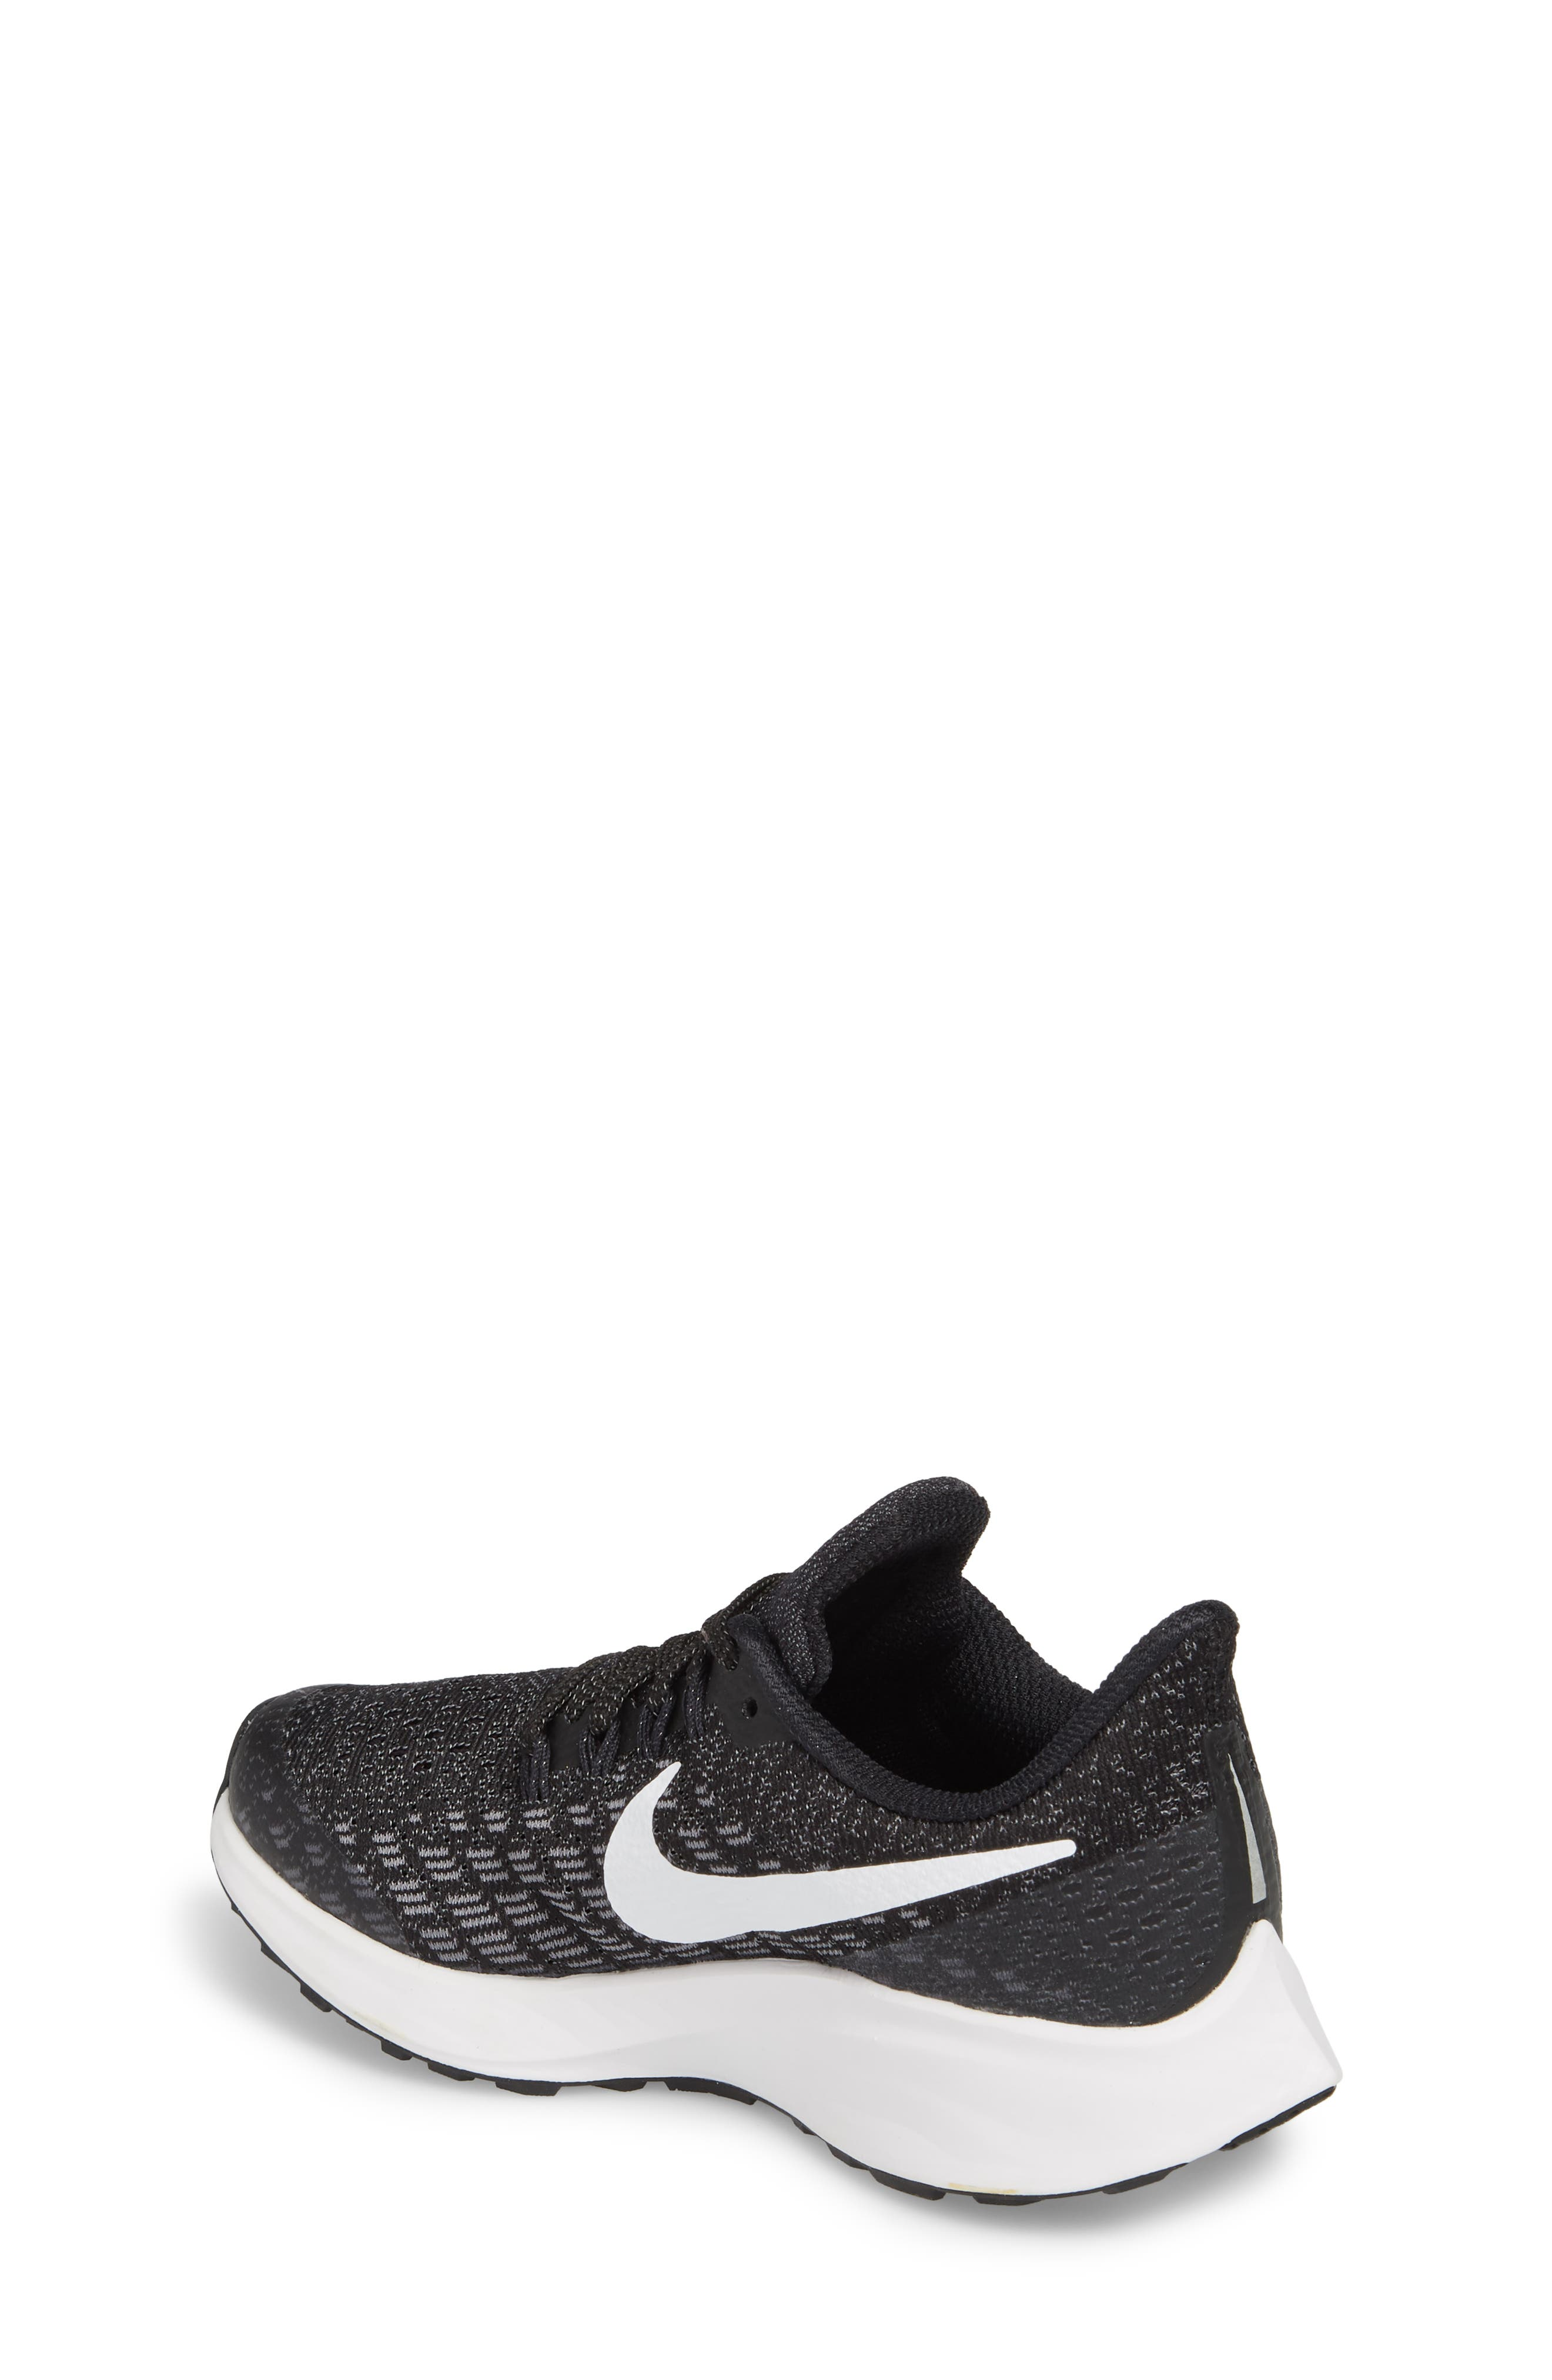 c9d11accad Boys' Nike Shoes: Sale | Nordstrom